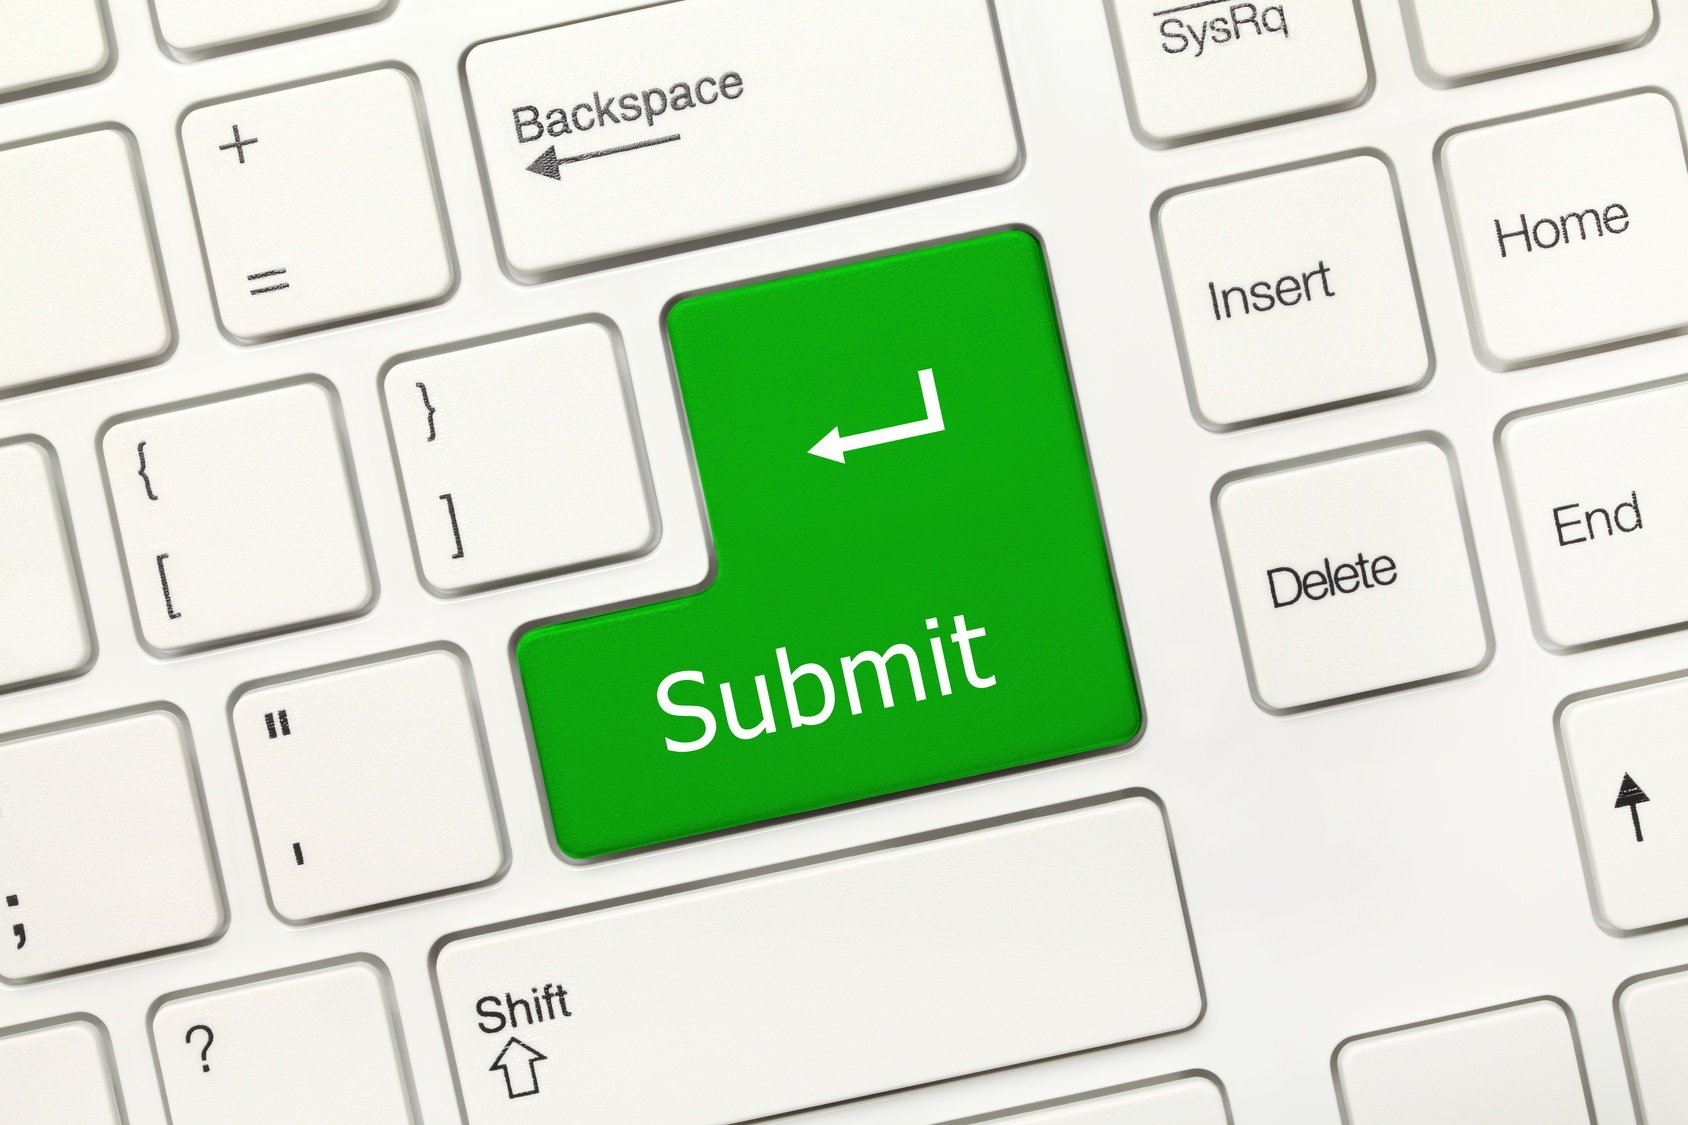 review apps before submitting